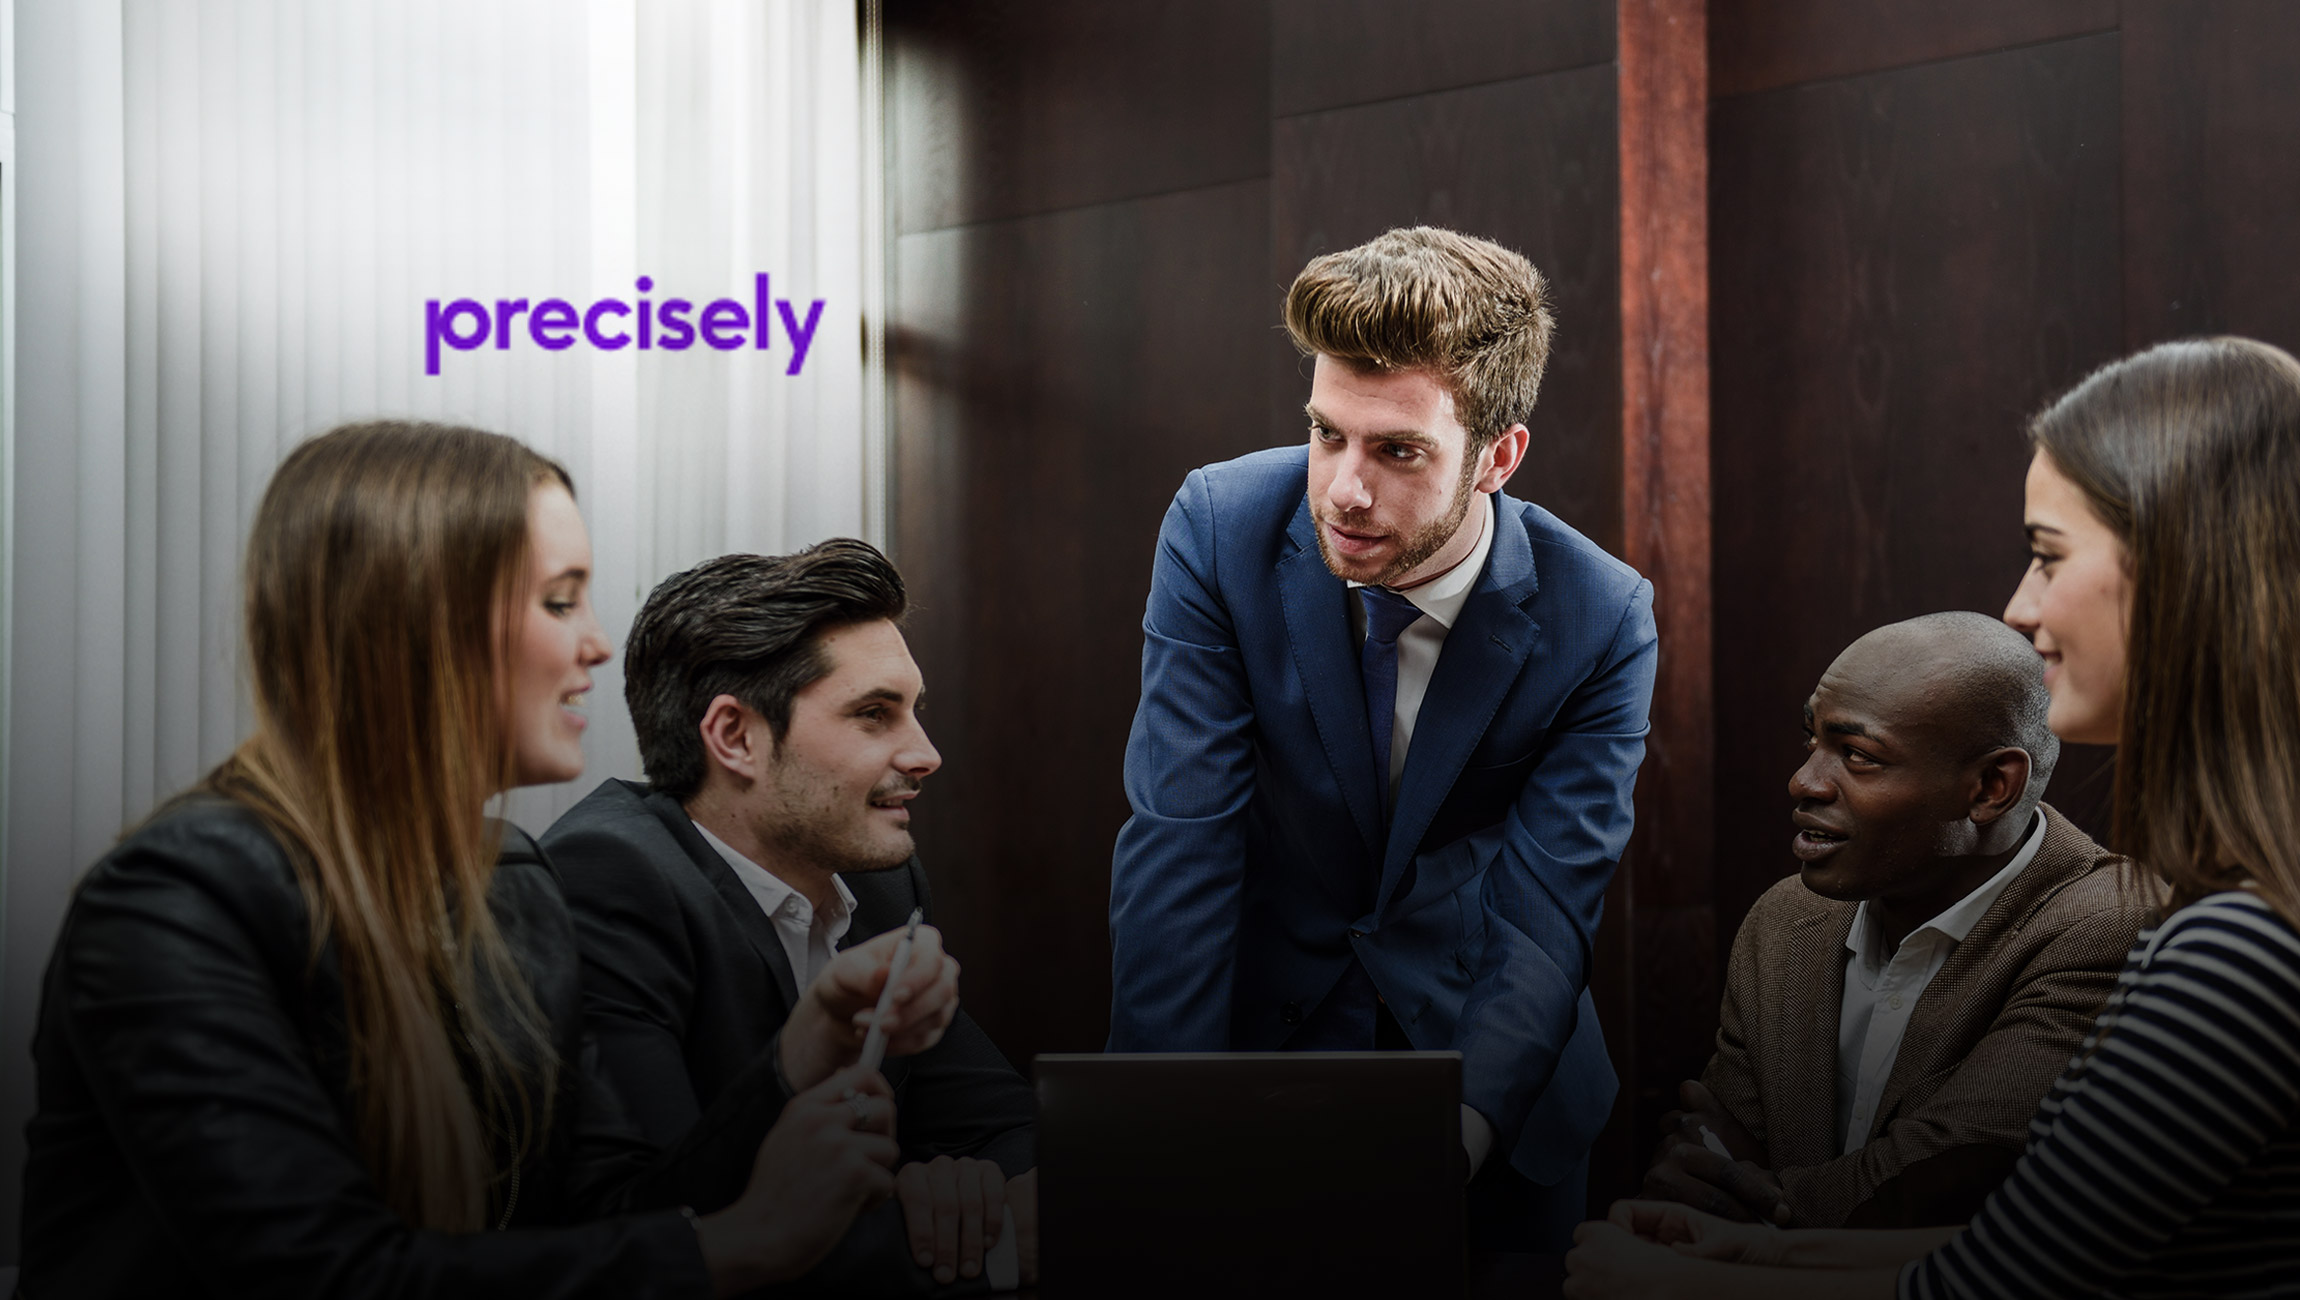 Precisely Delivers First End-to-End Data Integrity Suite for Confident Business Decisions